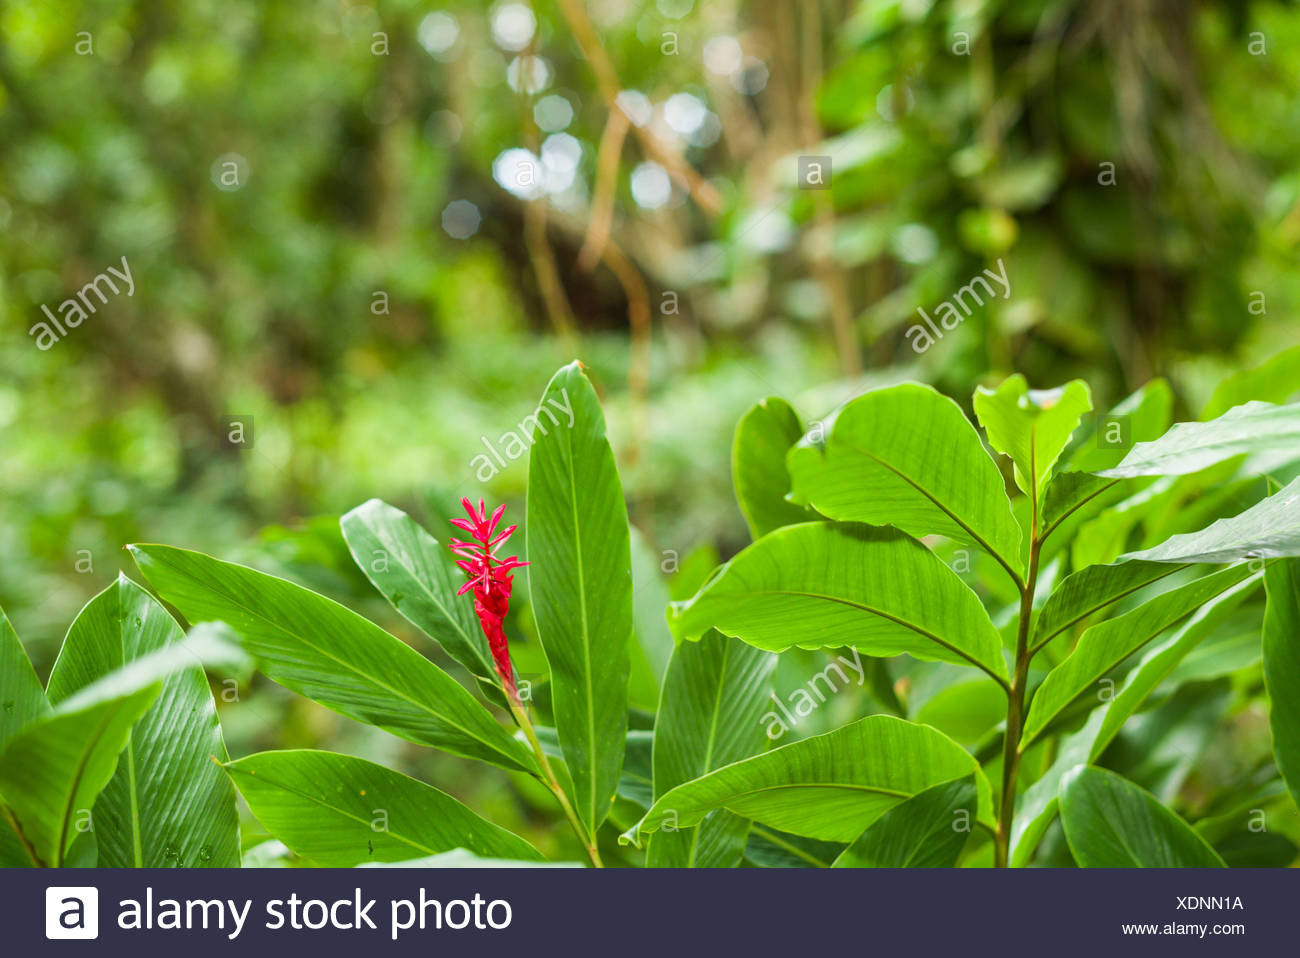 St. Kitts and Nevis, St. Kitts, Molineux, heliconia - Stock Image